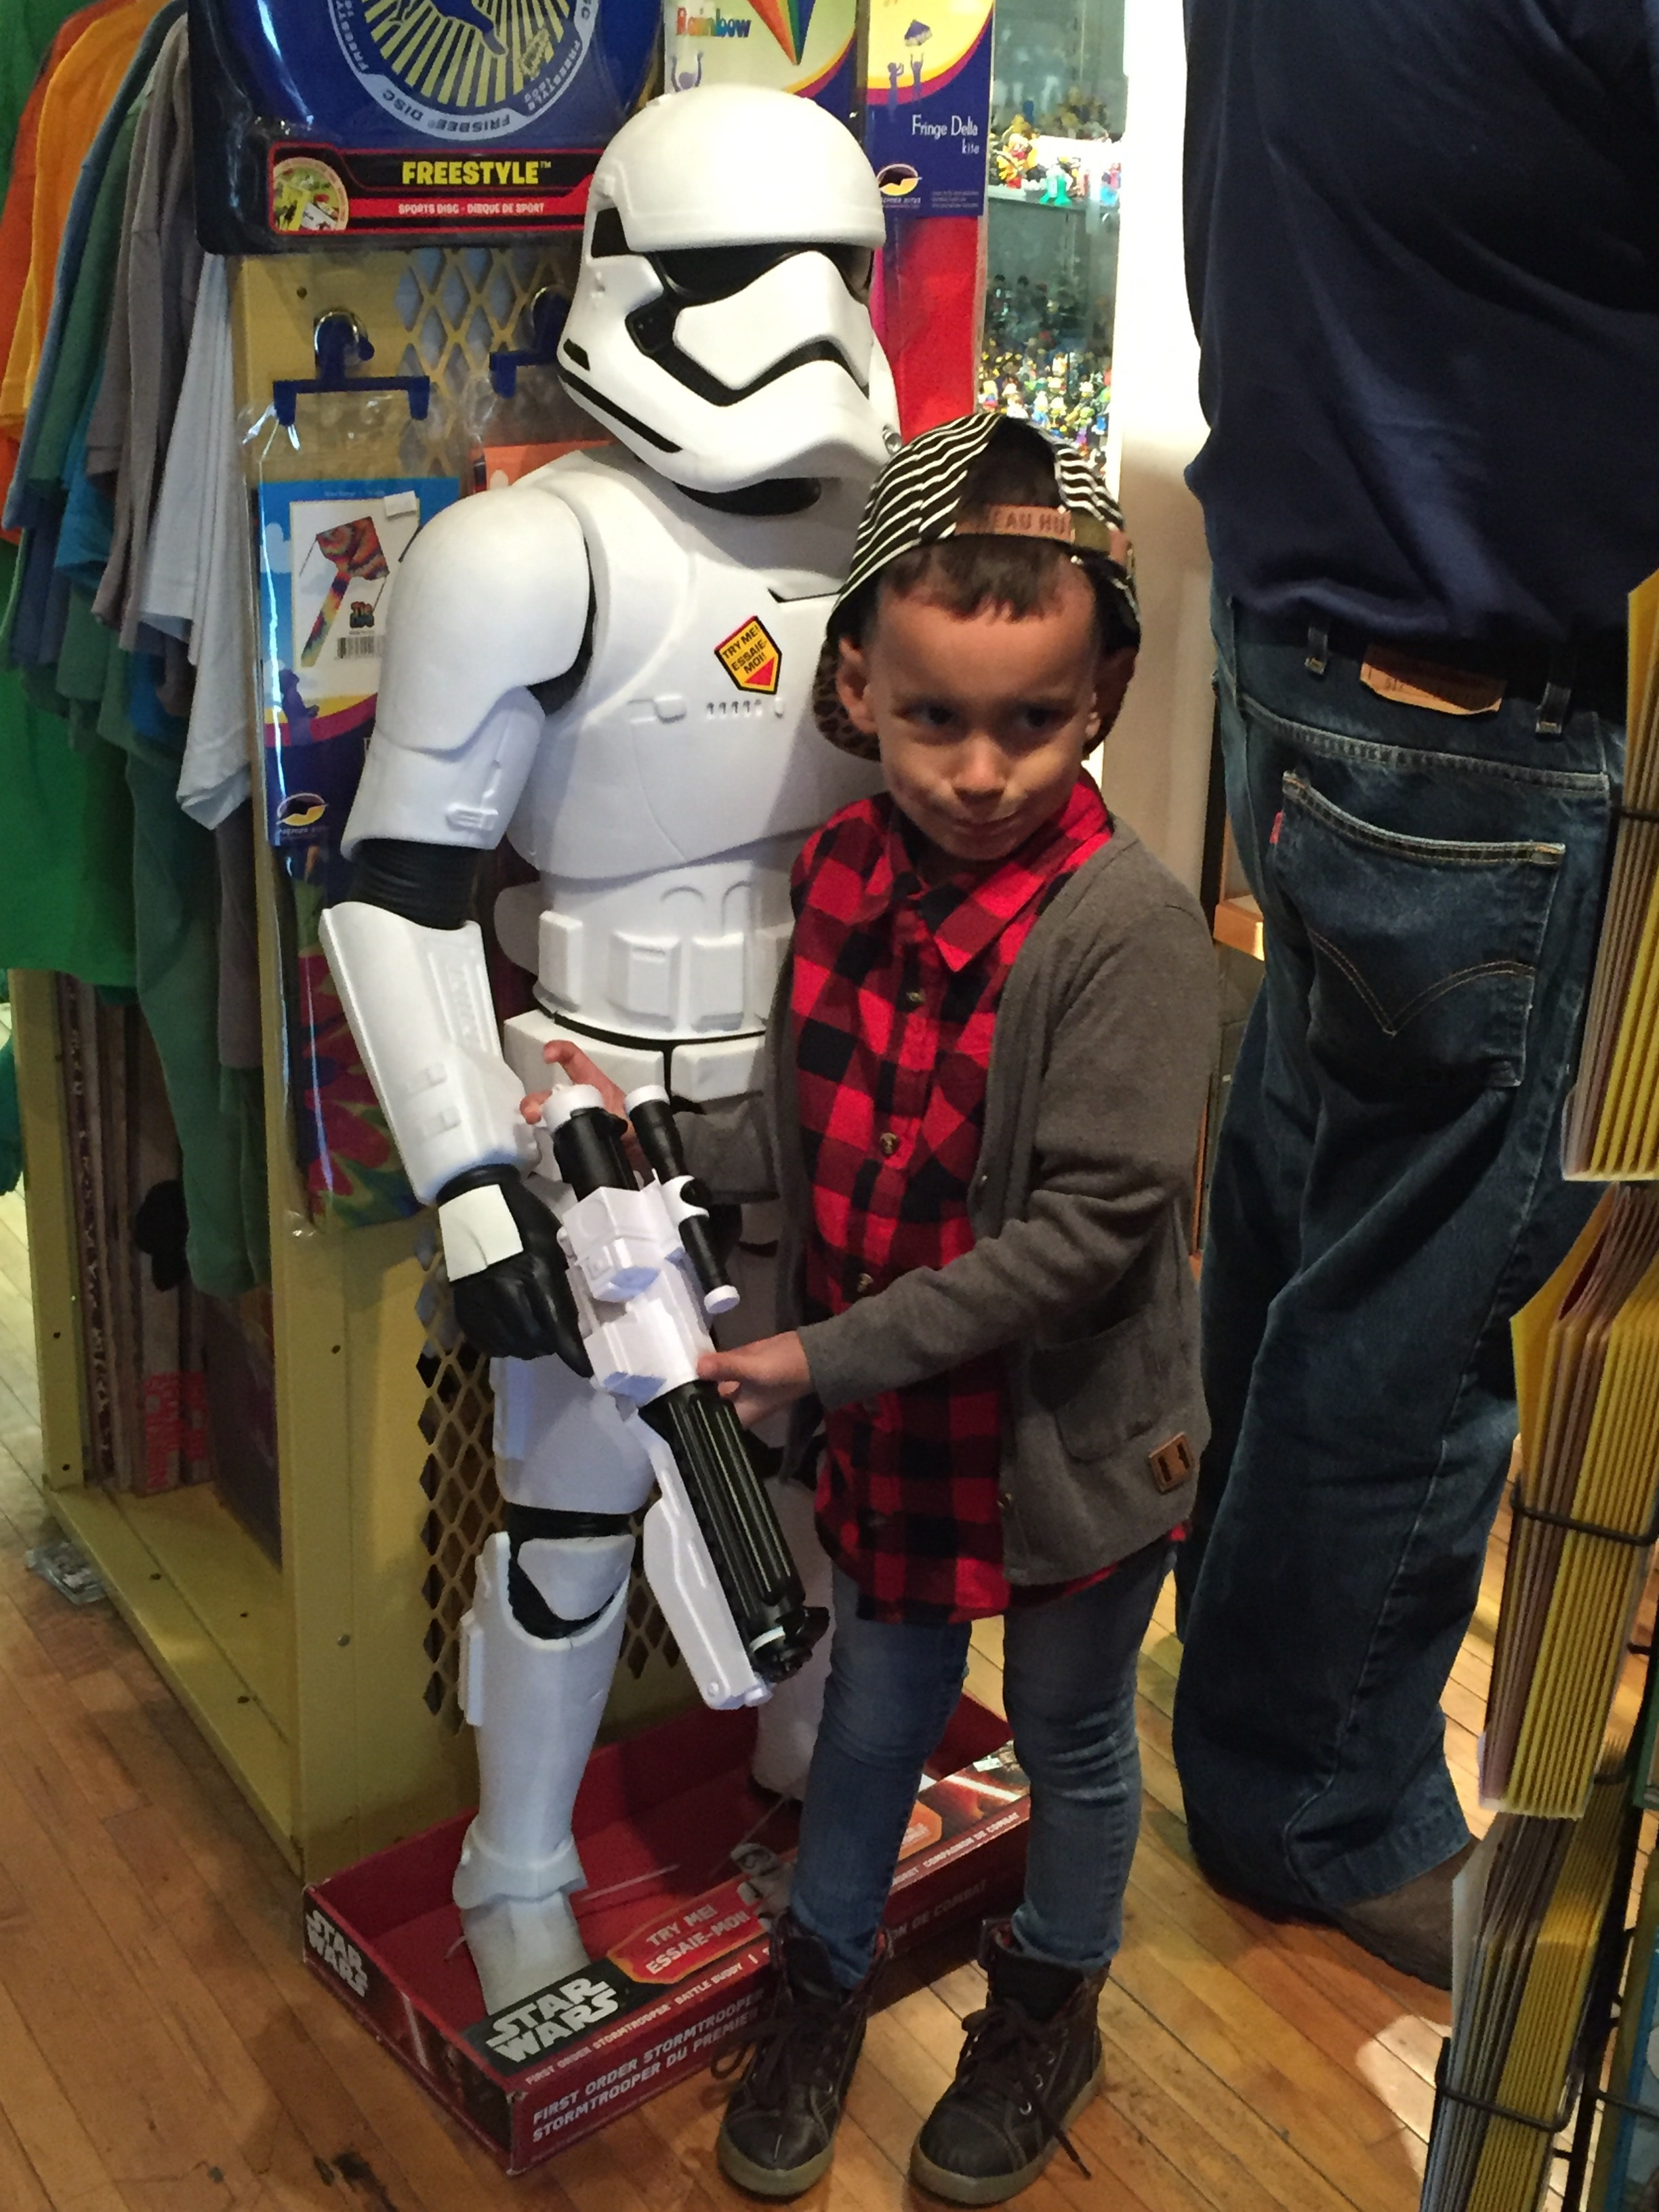 Checking out all the cool toys and comic books at  Big Fun  on High Street